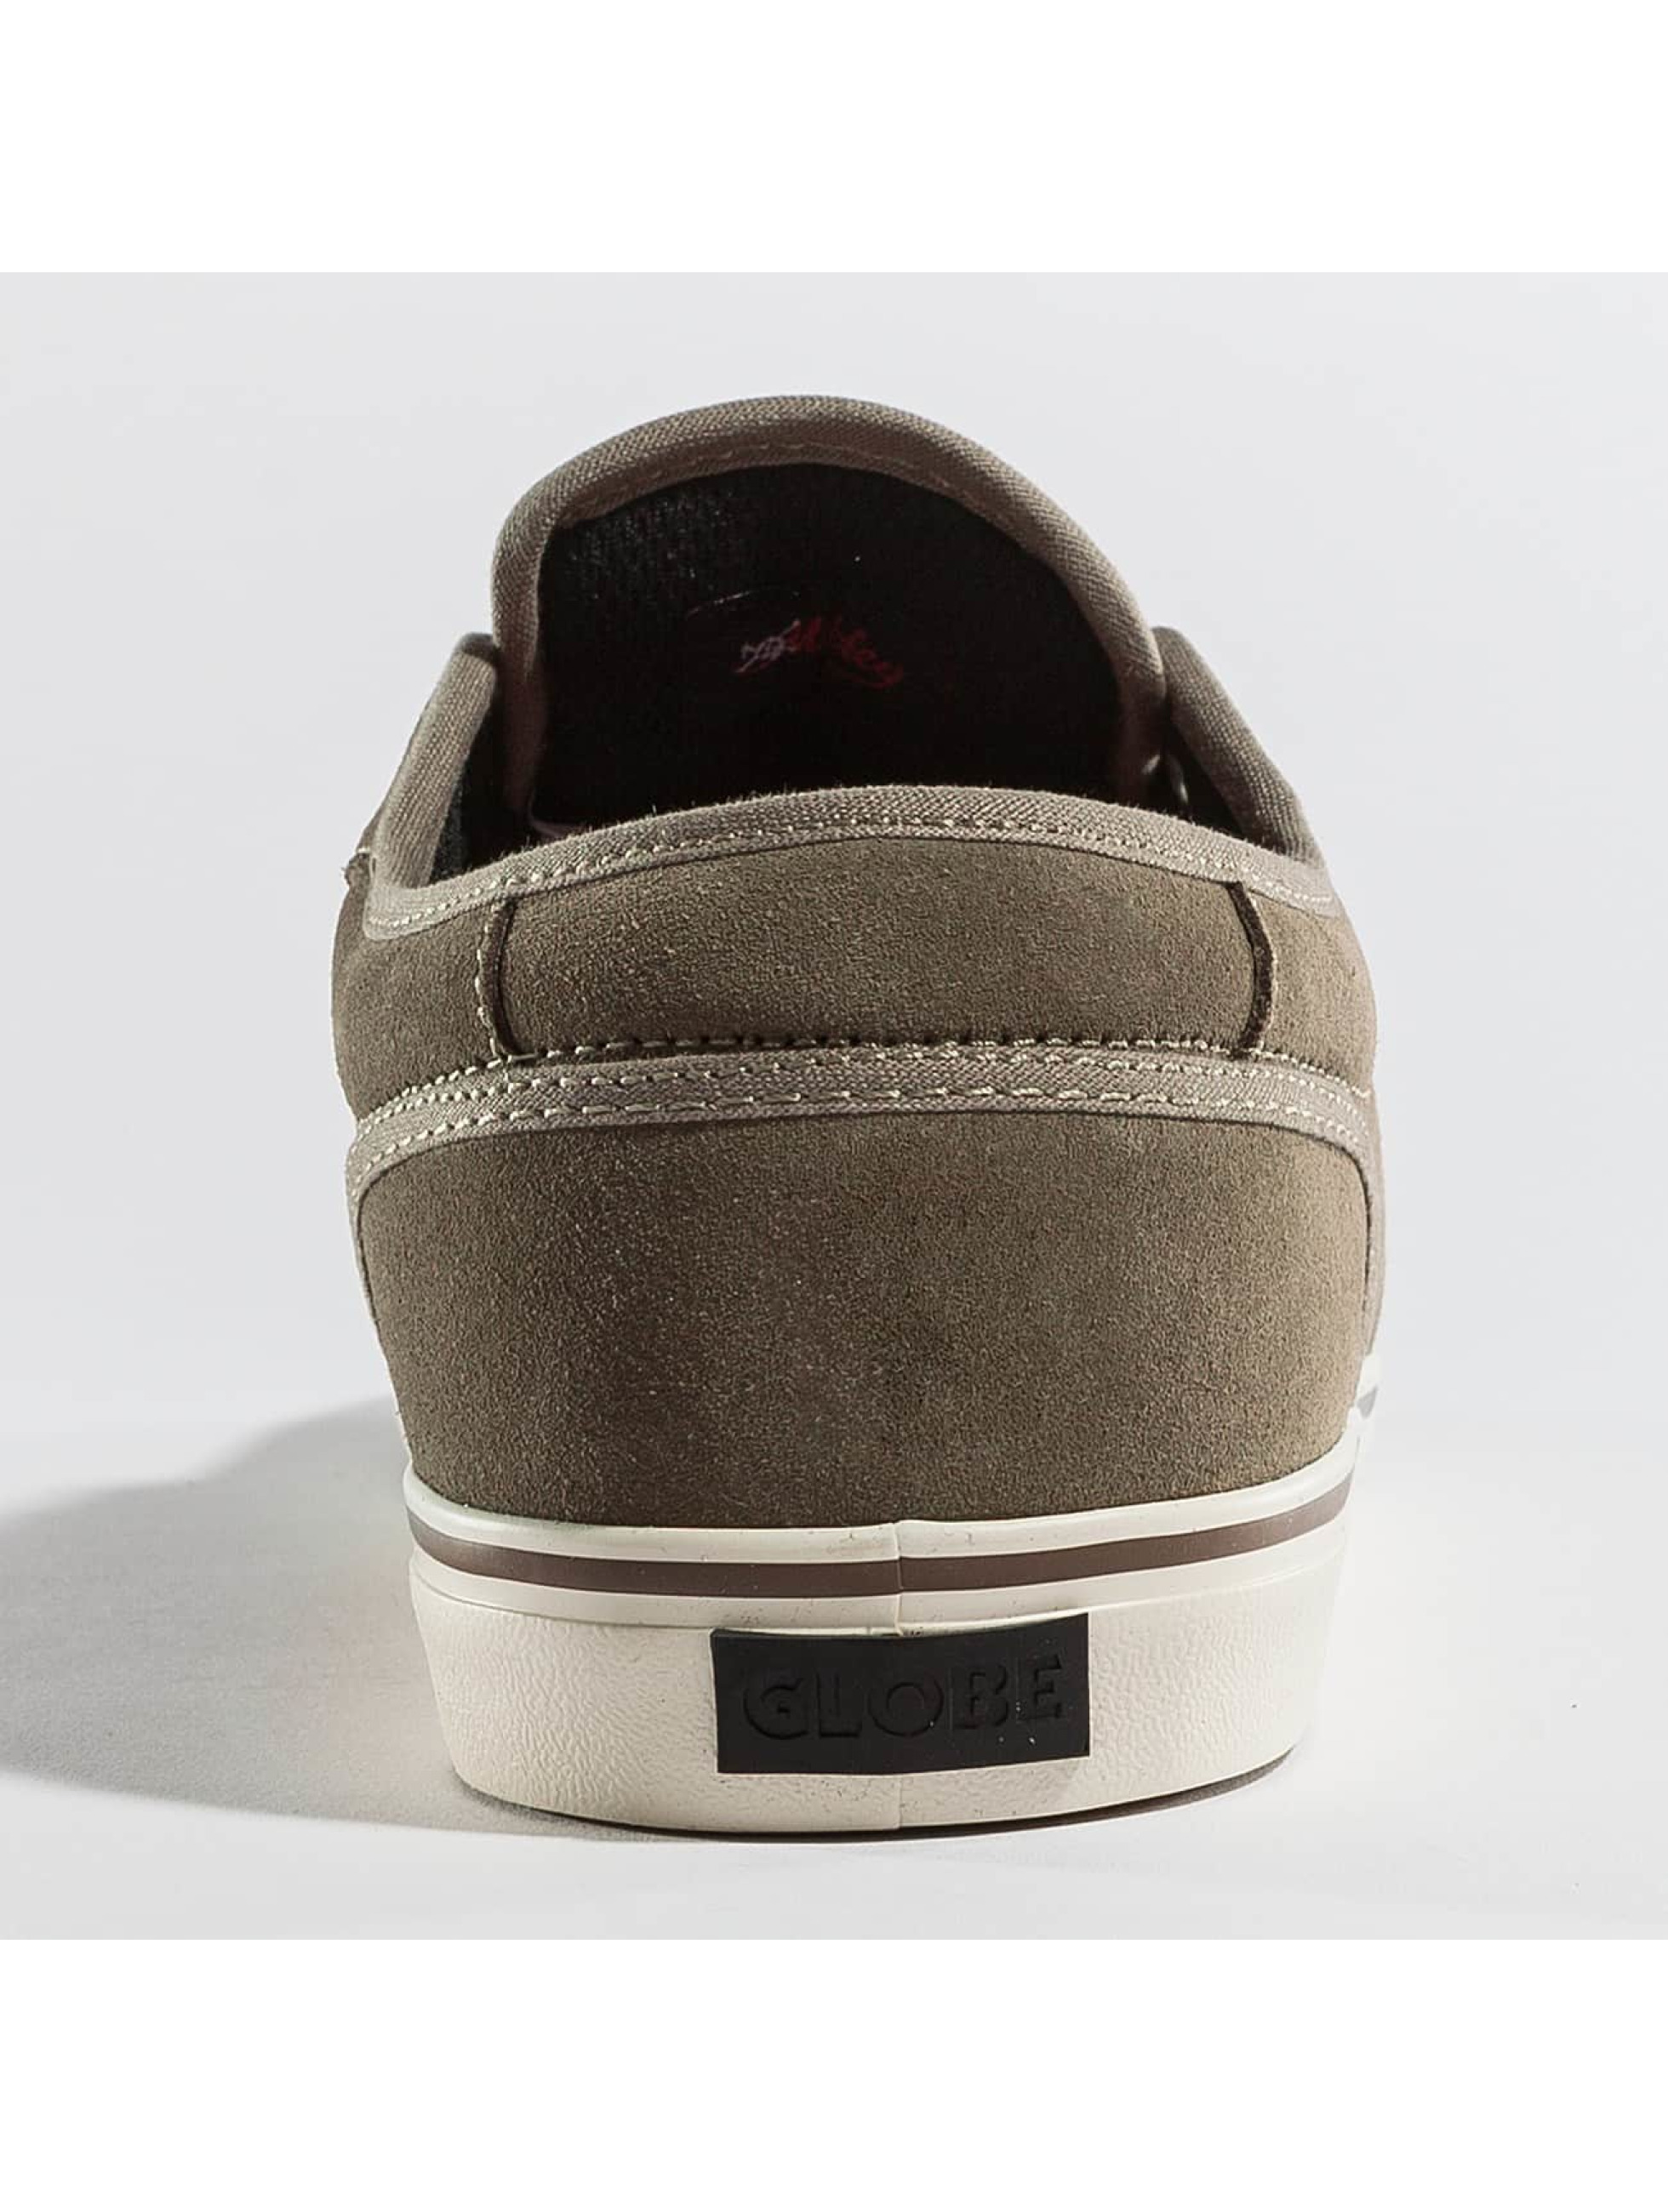 Globe Sneakers Motley brown